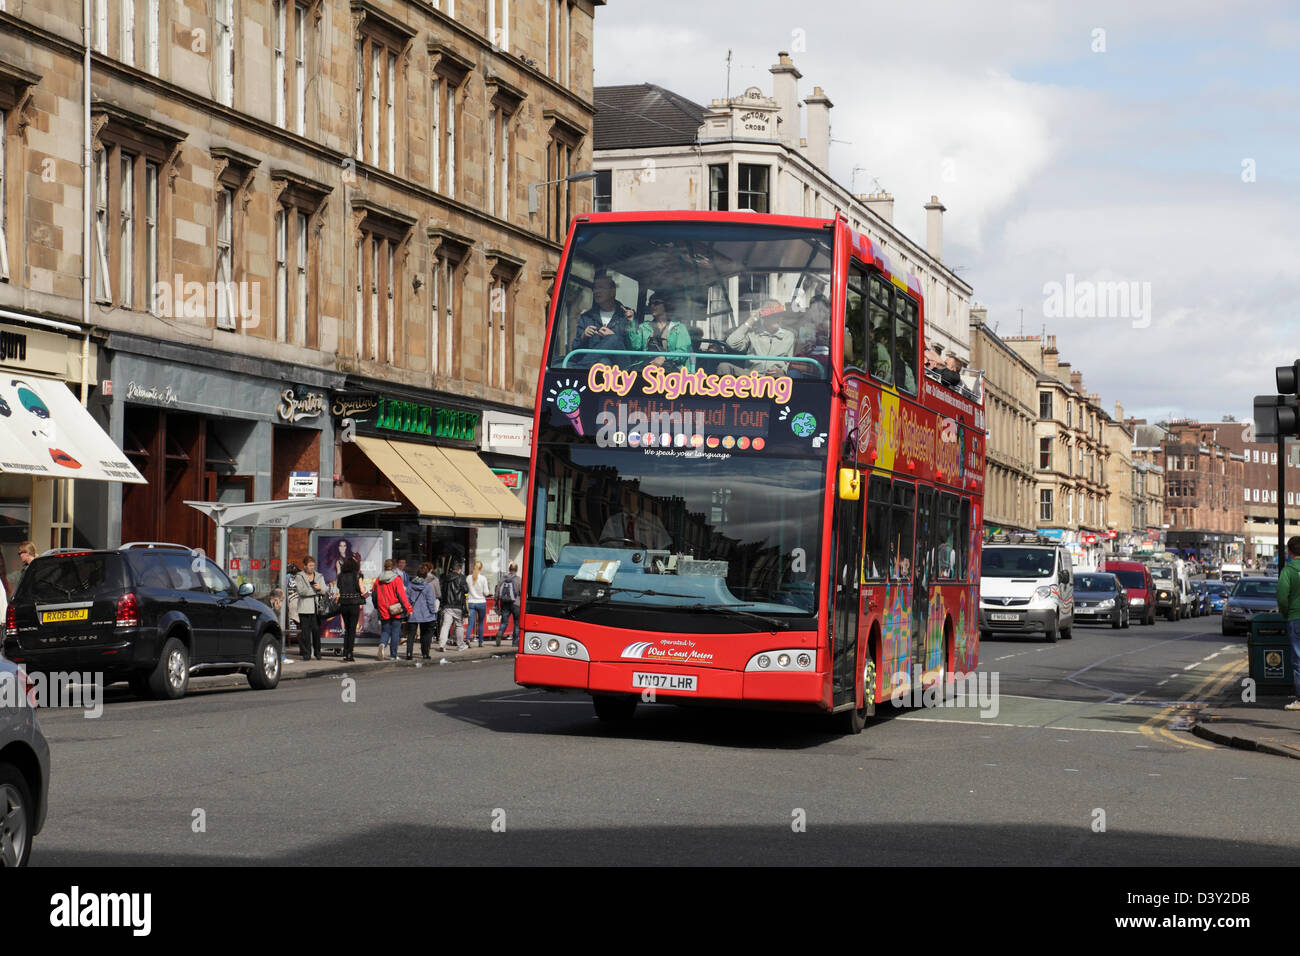 An open top tourist bus on Byres Road in the West End of Glasgow, Scotland, UK - Stock Image